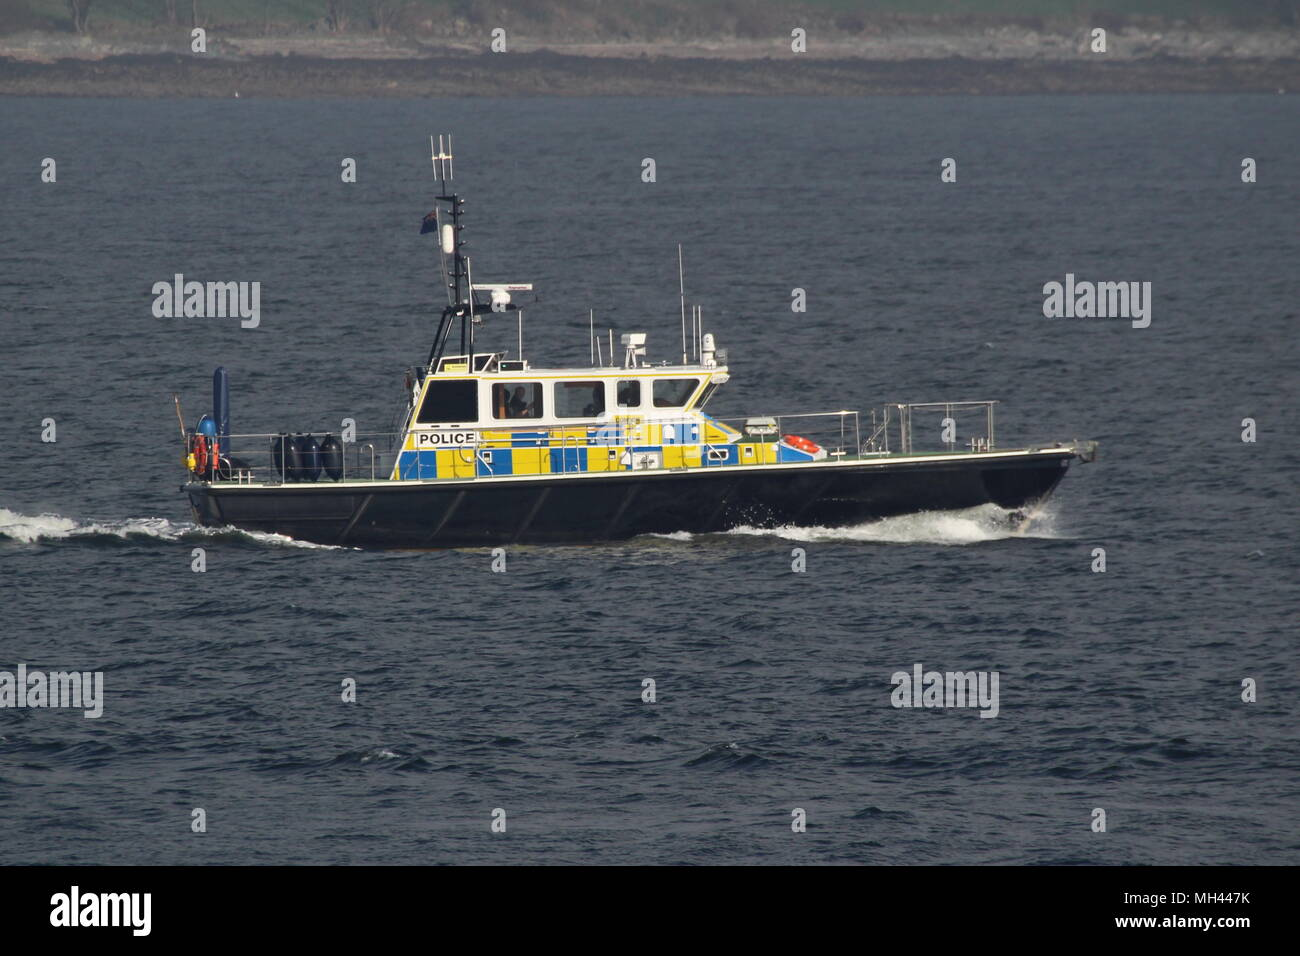 Joint Patrol Stock Photos & Joint Patrol Stock Images - Alamy